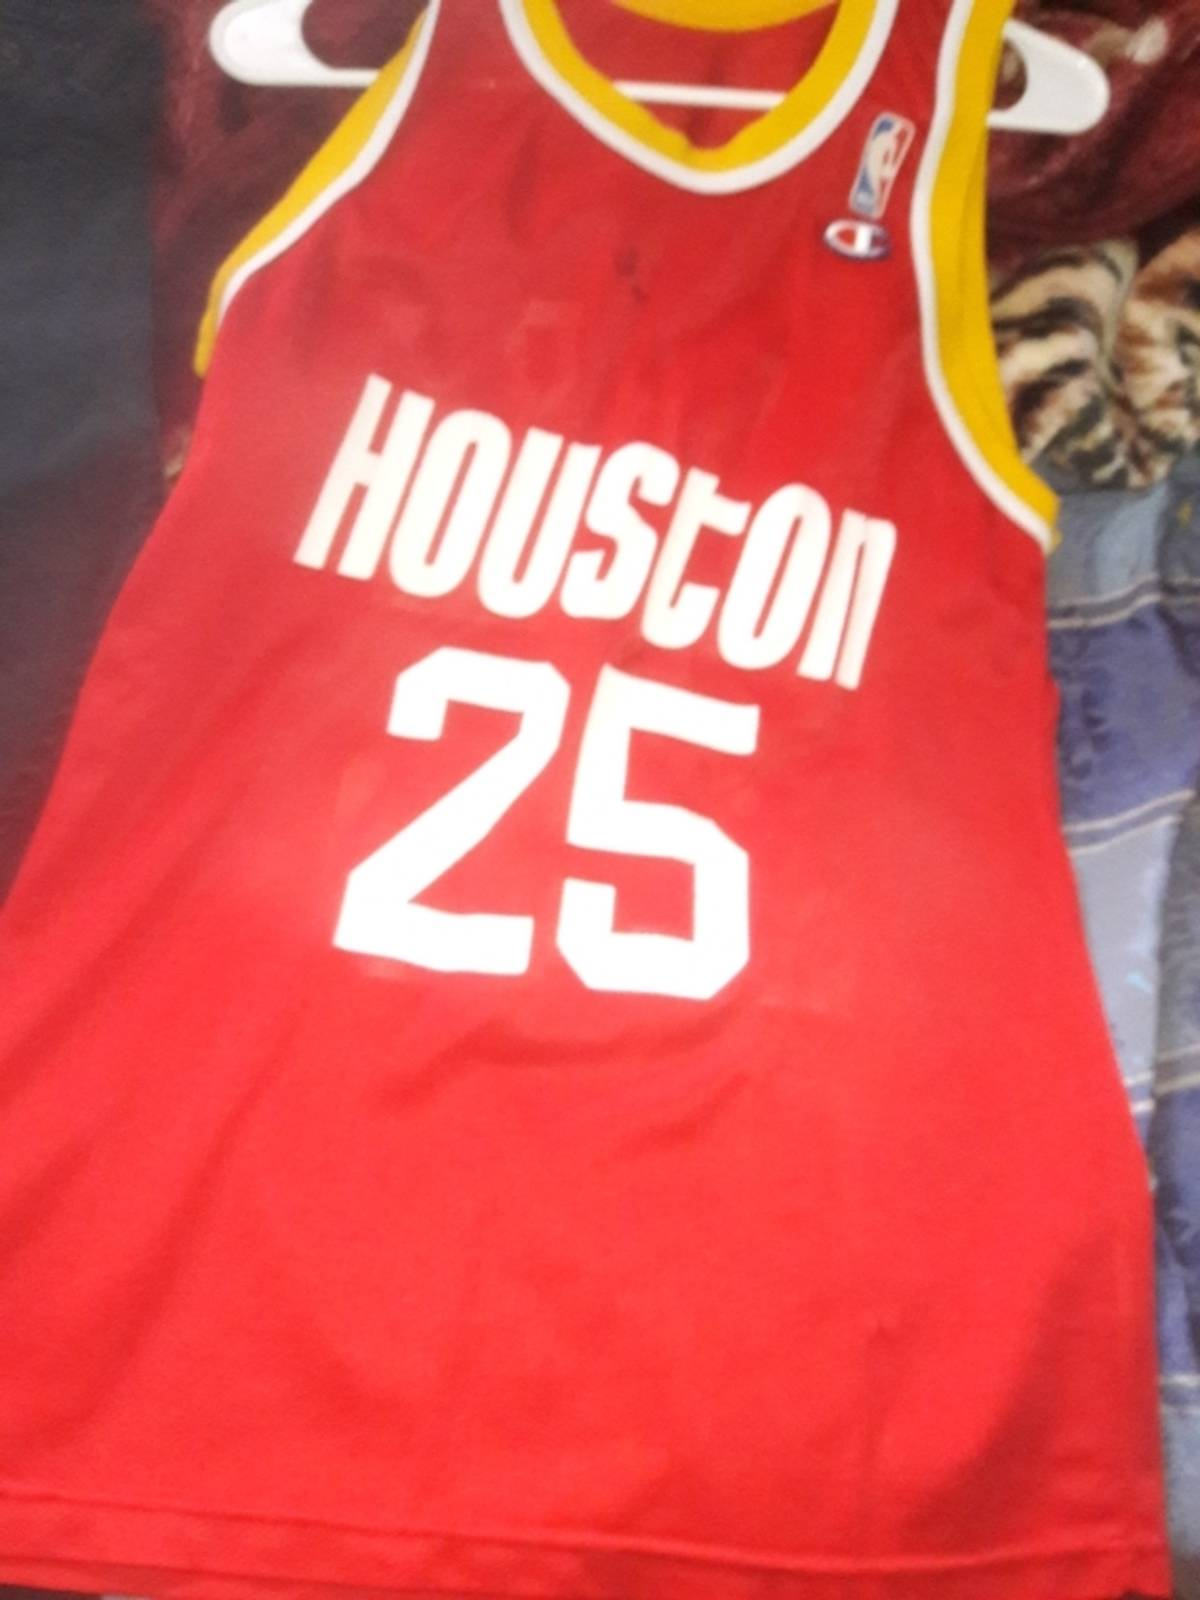 3f6407f3d Vintage Robert Horry Retro Throwback Houston Rockets Jersey Size m - Jerseys  for Sale - Grailed